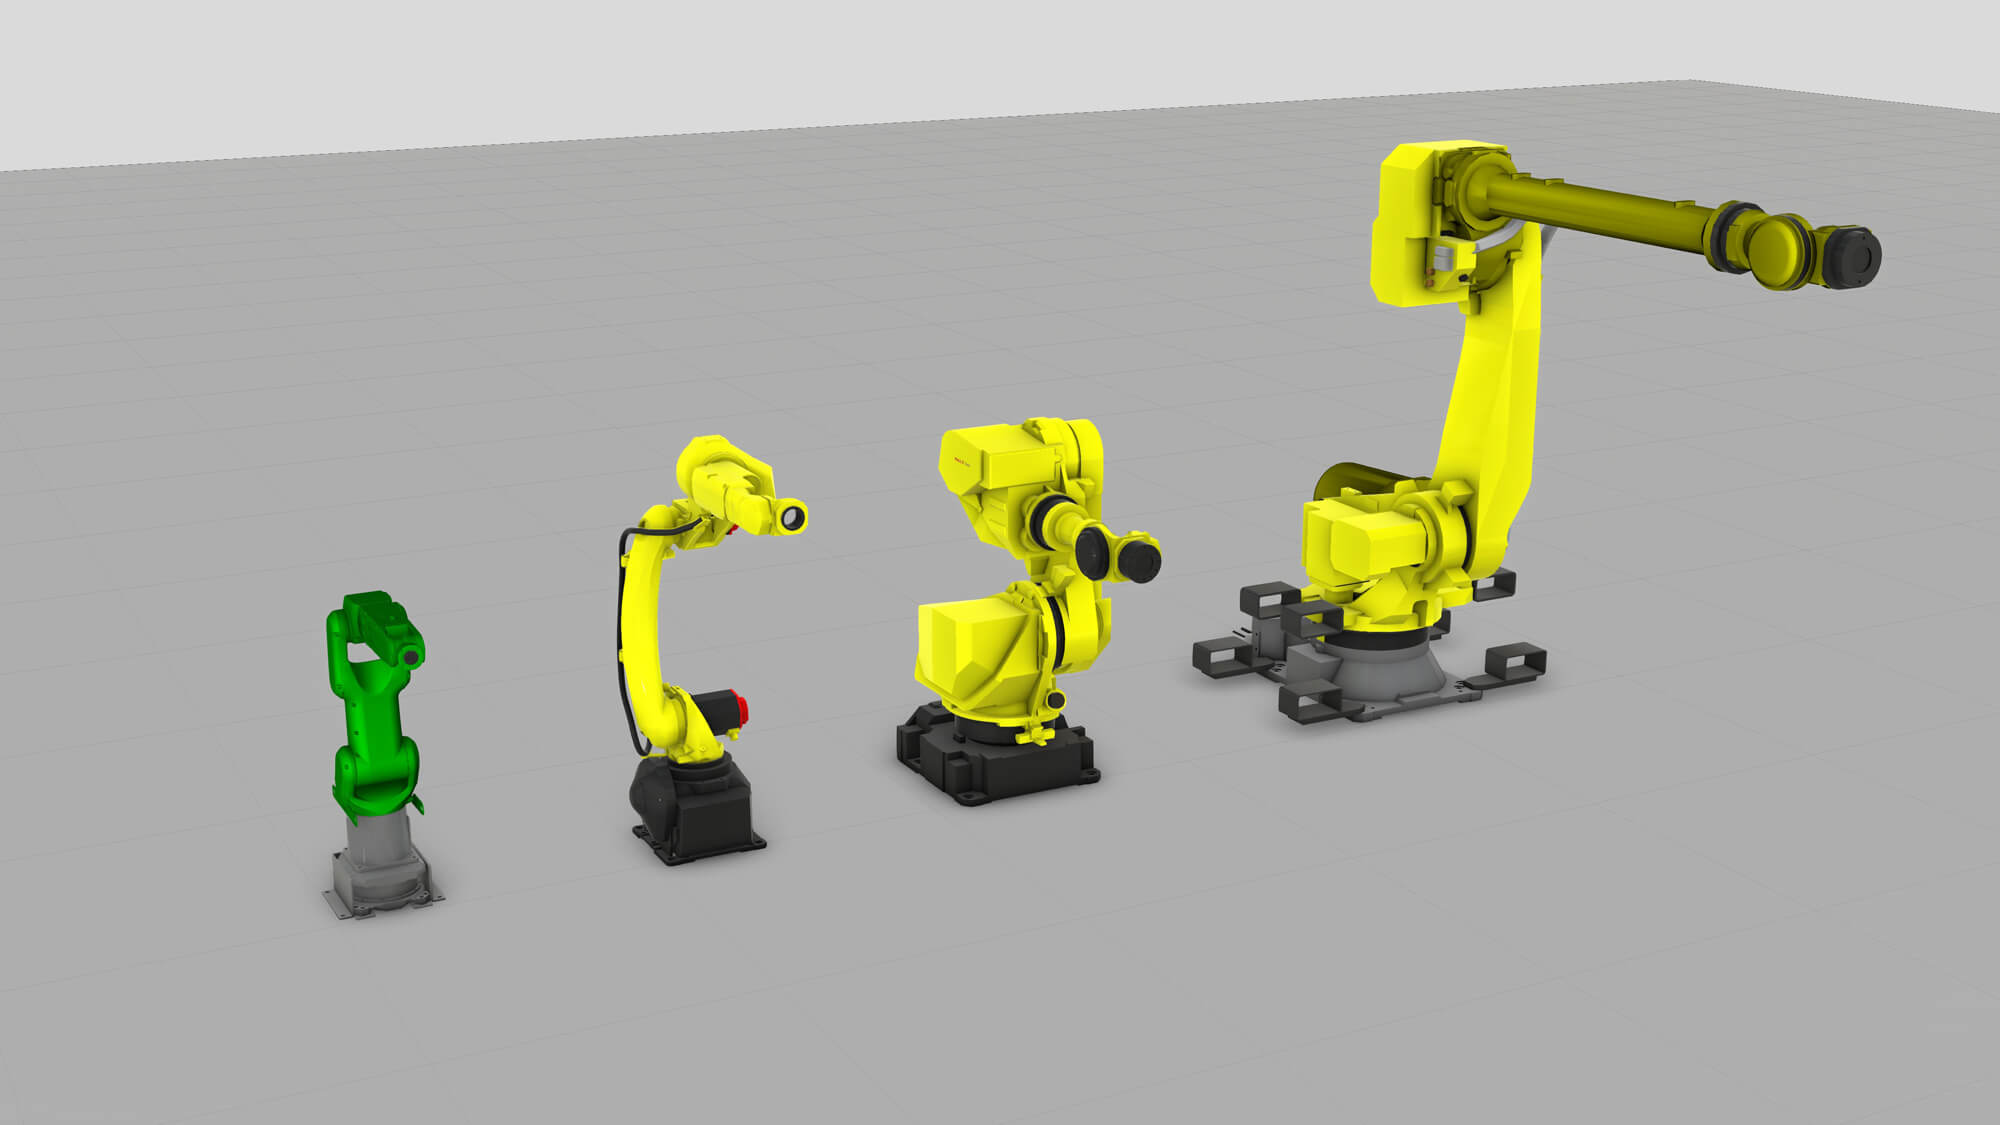 The new Fanuc component additions to Visual Components eCatalog in April 2018